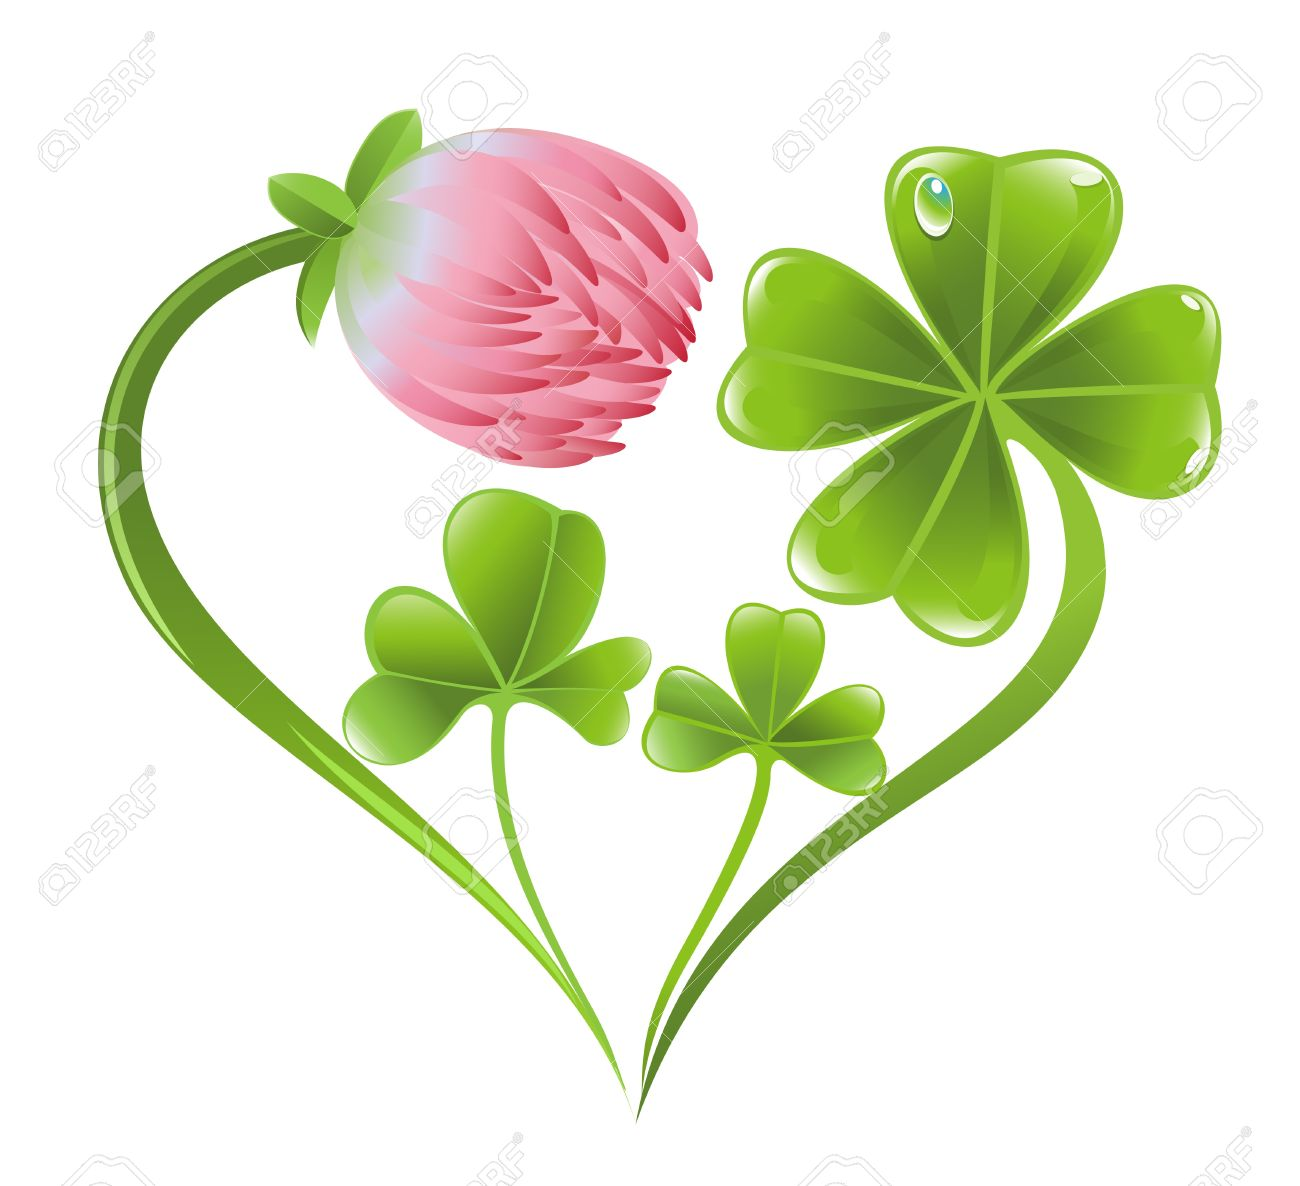 Heart Icon With Clover Leaf And Blossom Royalty Free Cliparts.